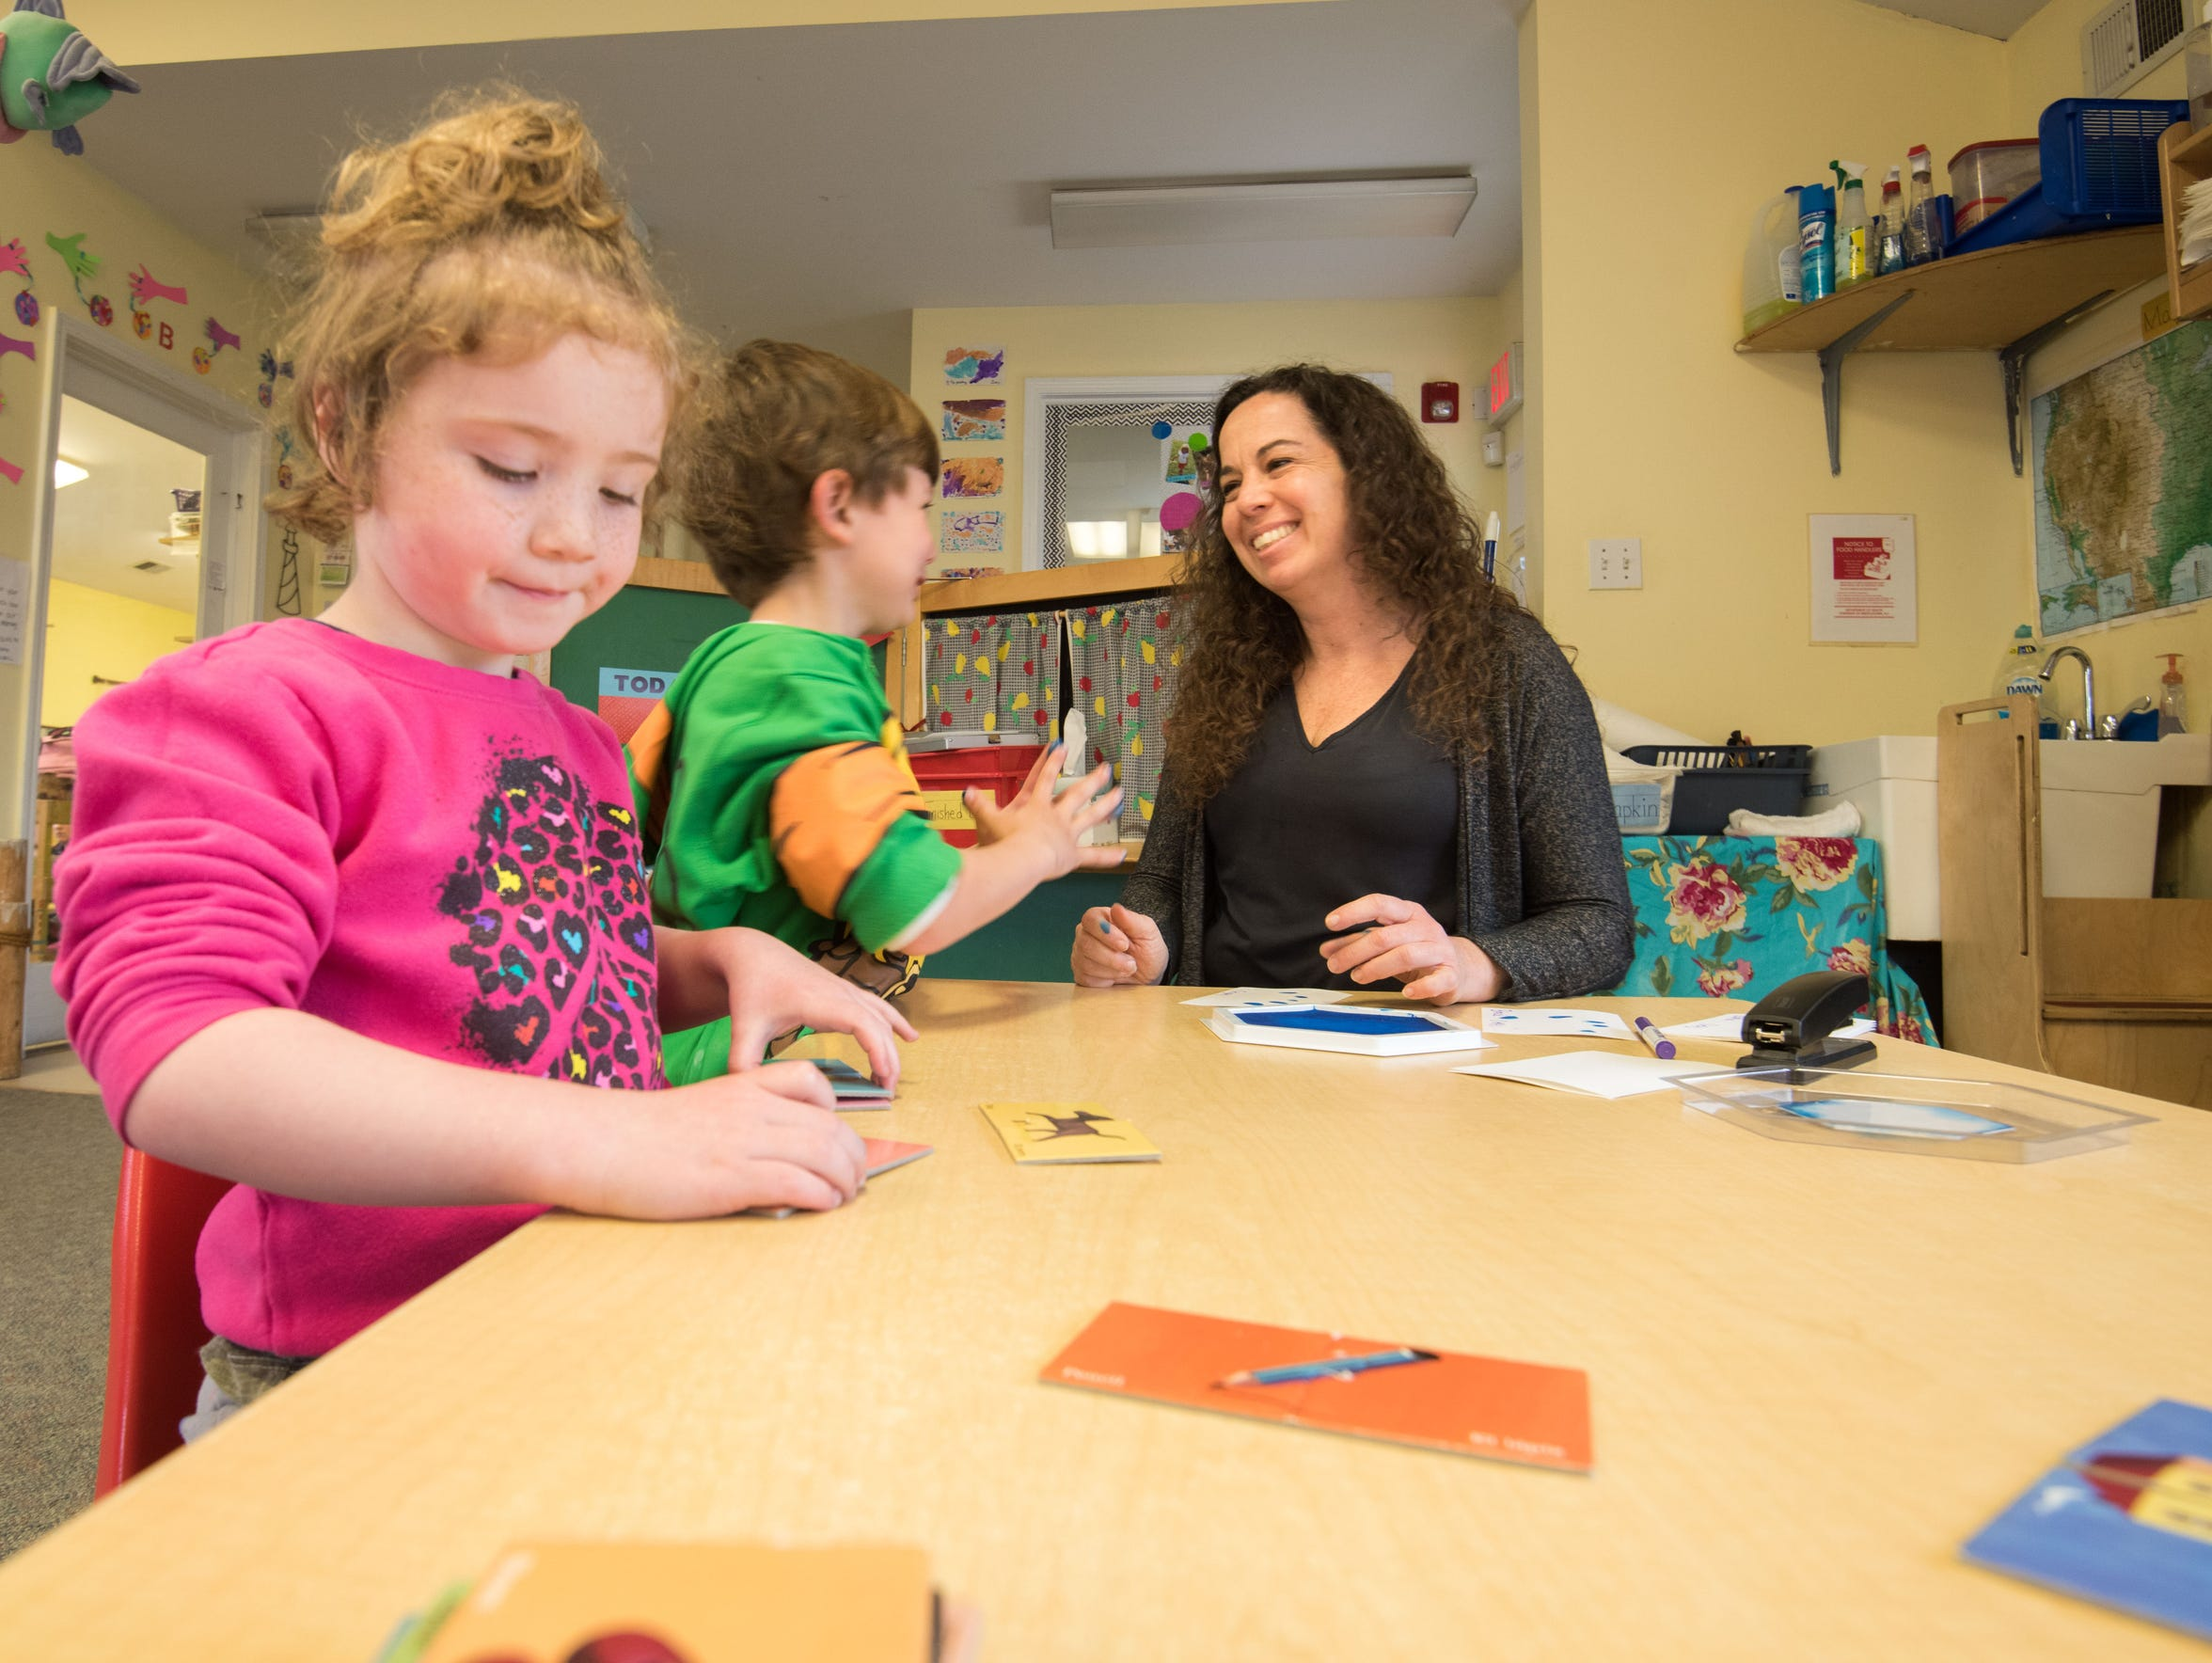 4/16/18-  Pre-K teacher Sarah Russo works with students